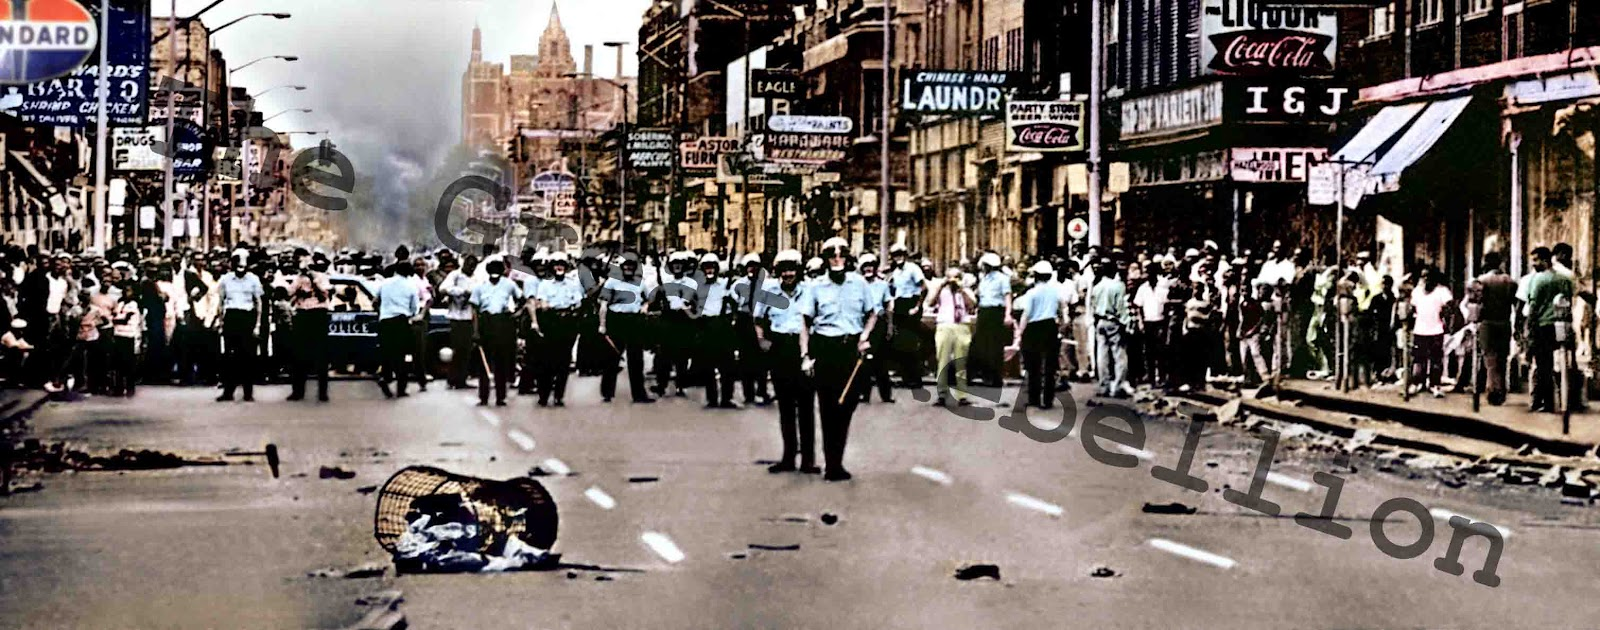 Detroit-Riot-1967-annotated